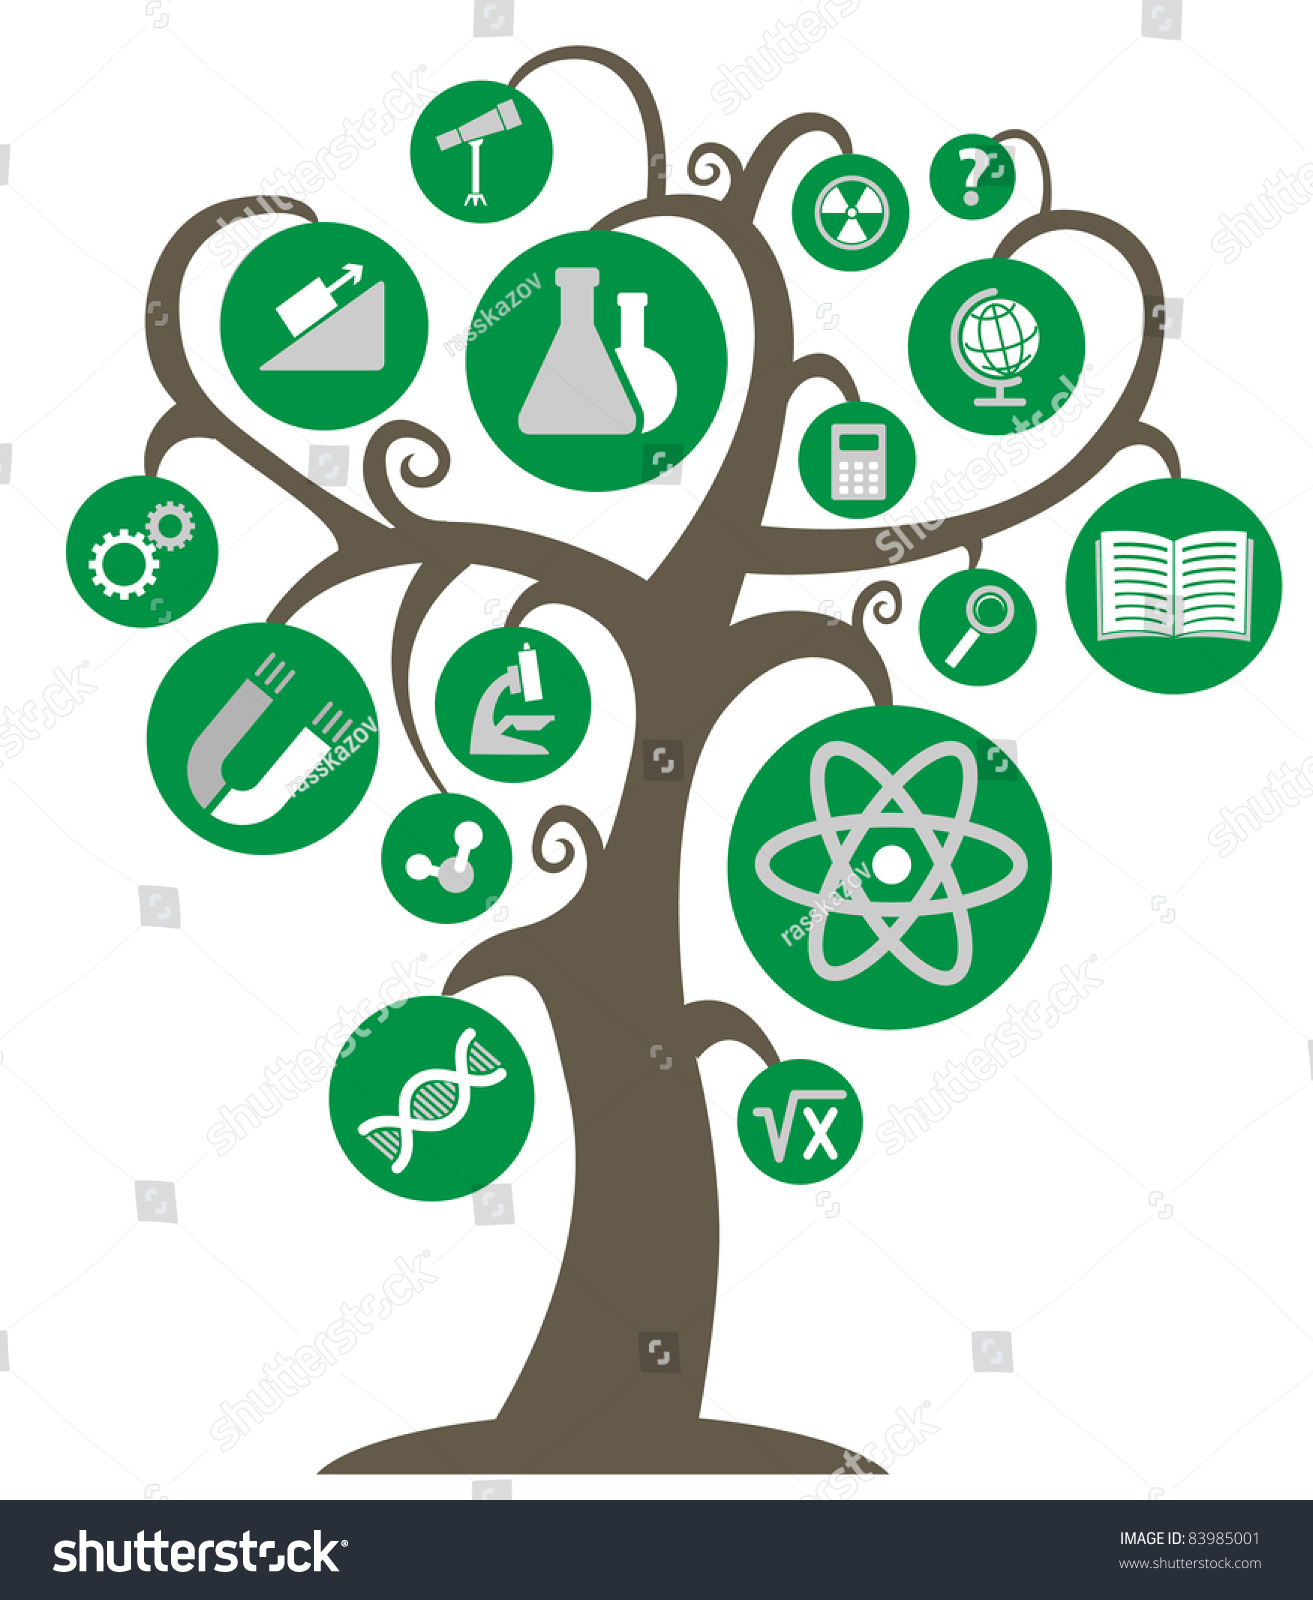 Tree Knowledge Symbols Science Education Branches Stock